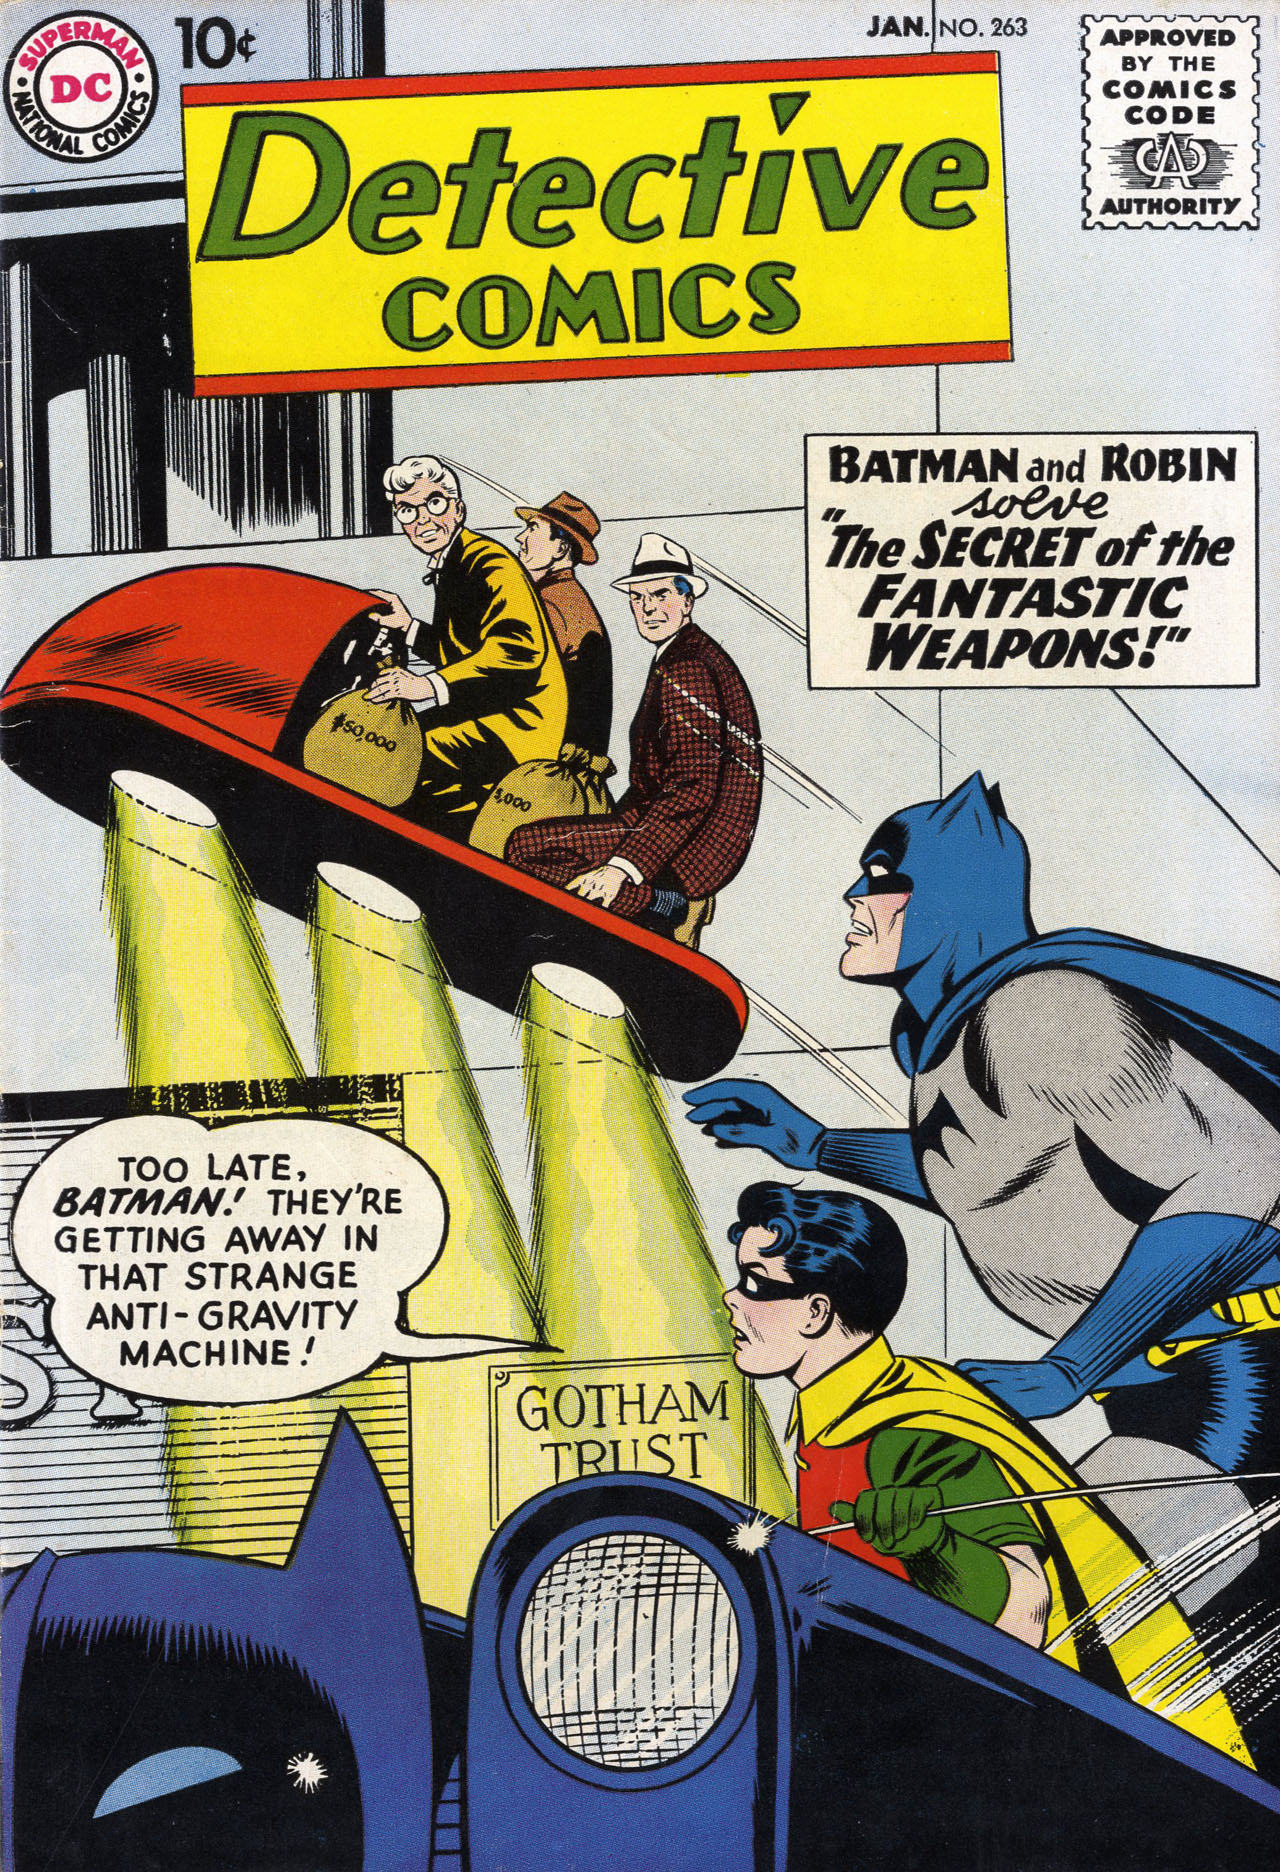 Read online Detective Comics (1937) comic -  Issue #263 - 1